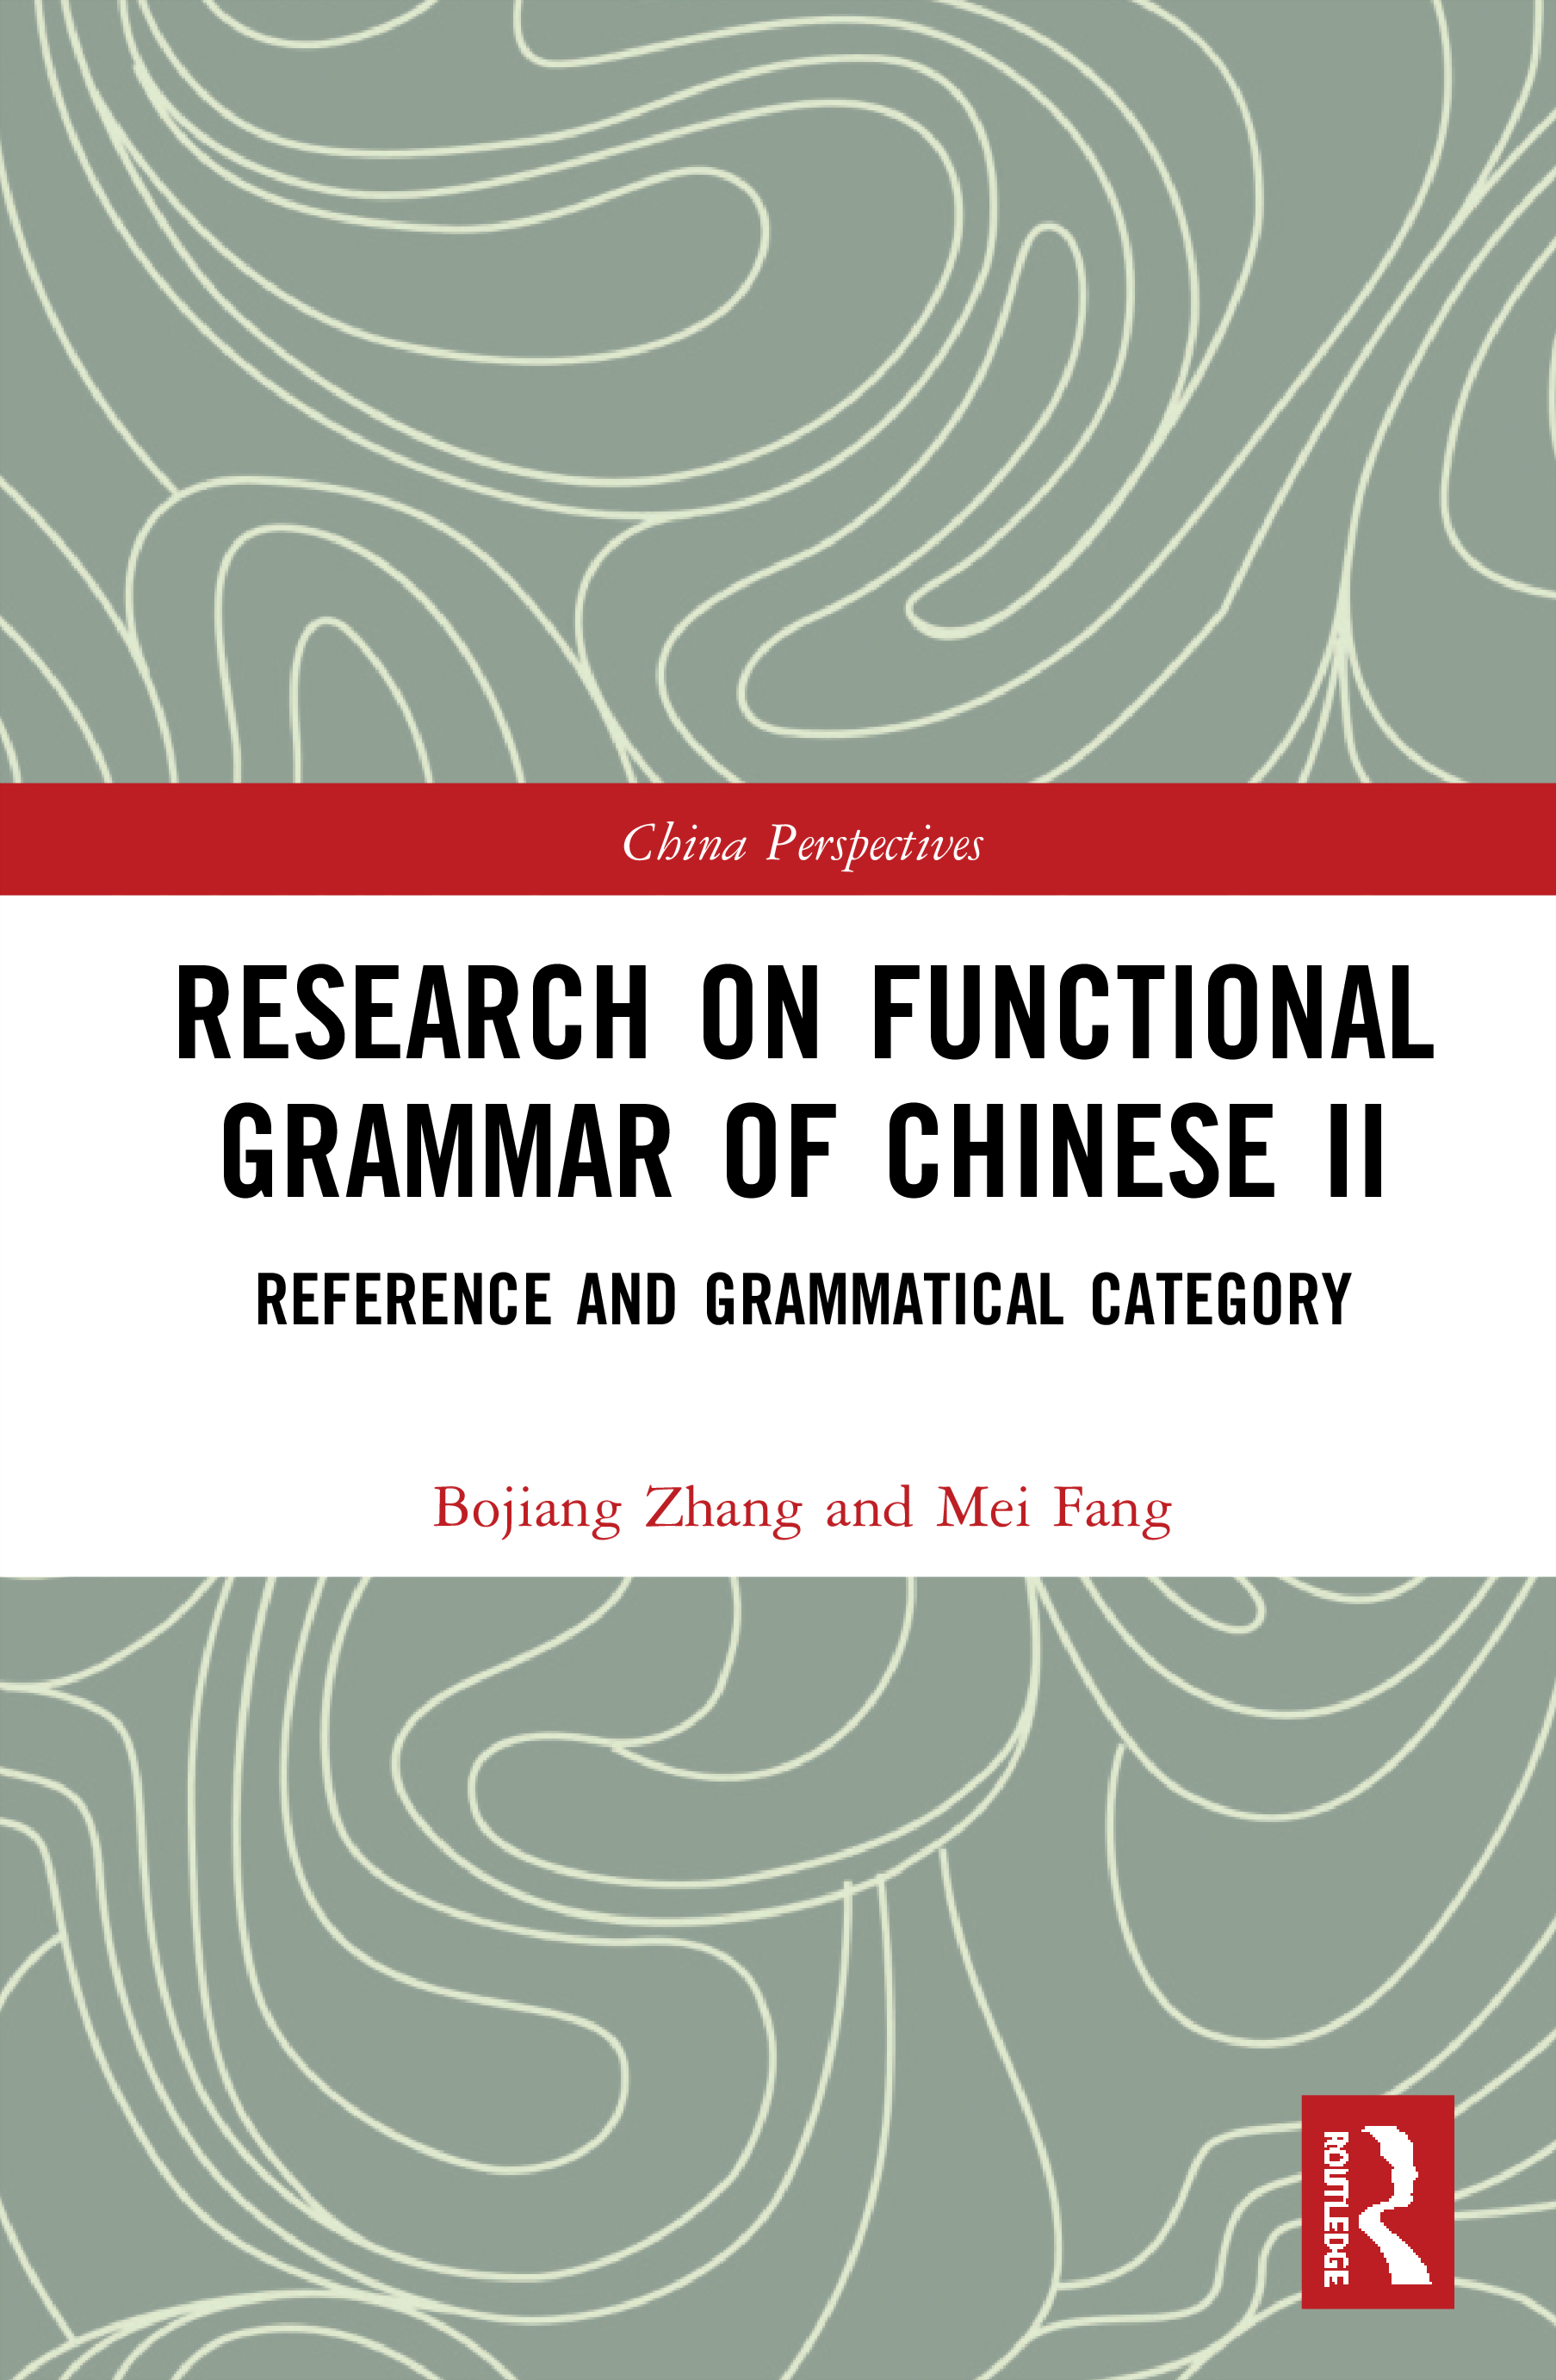 Research on Functional Grammar of Chinese II: Reference and Grammatical Category book cover